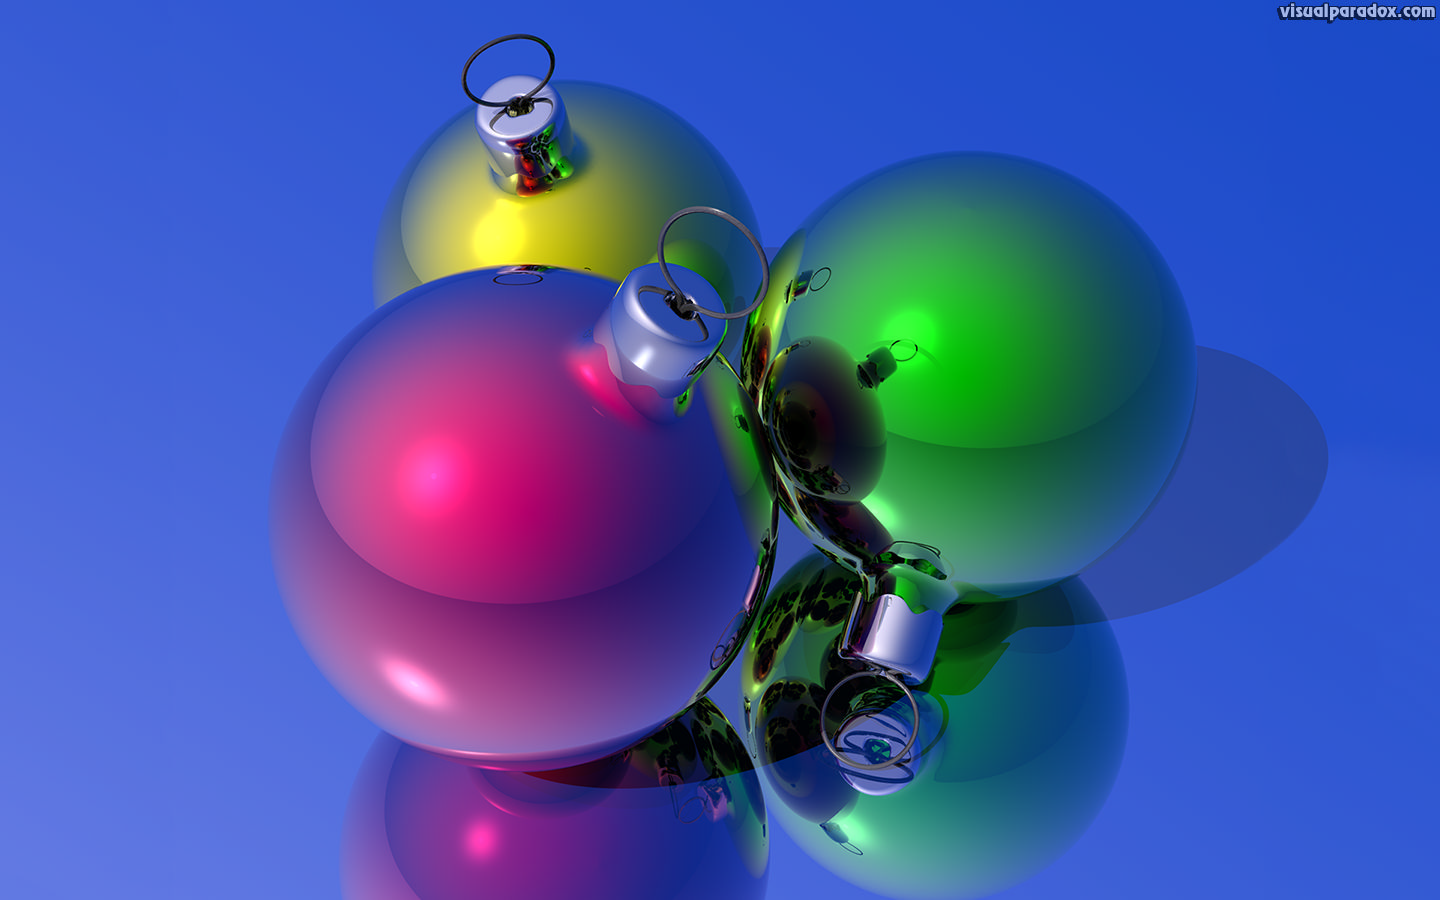 christmas, holiday, x-mas, decorations, glass, balls, bulbs, ball, 3d, wallpaper